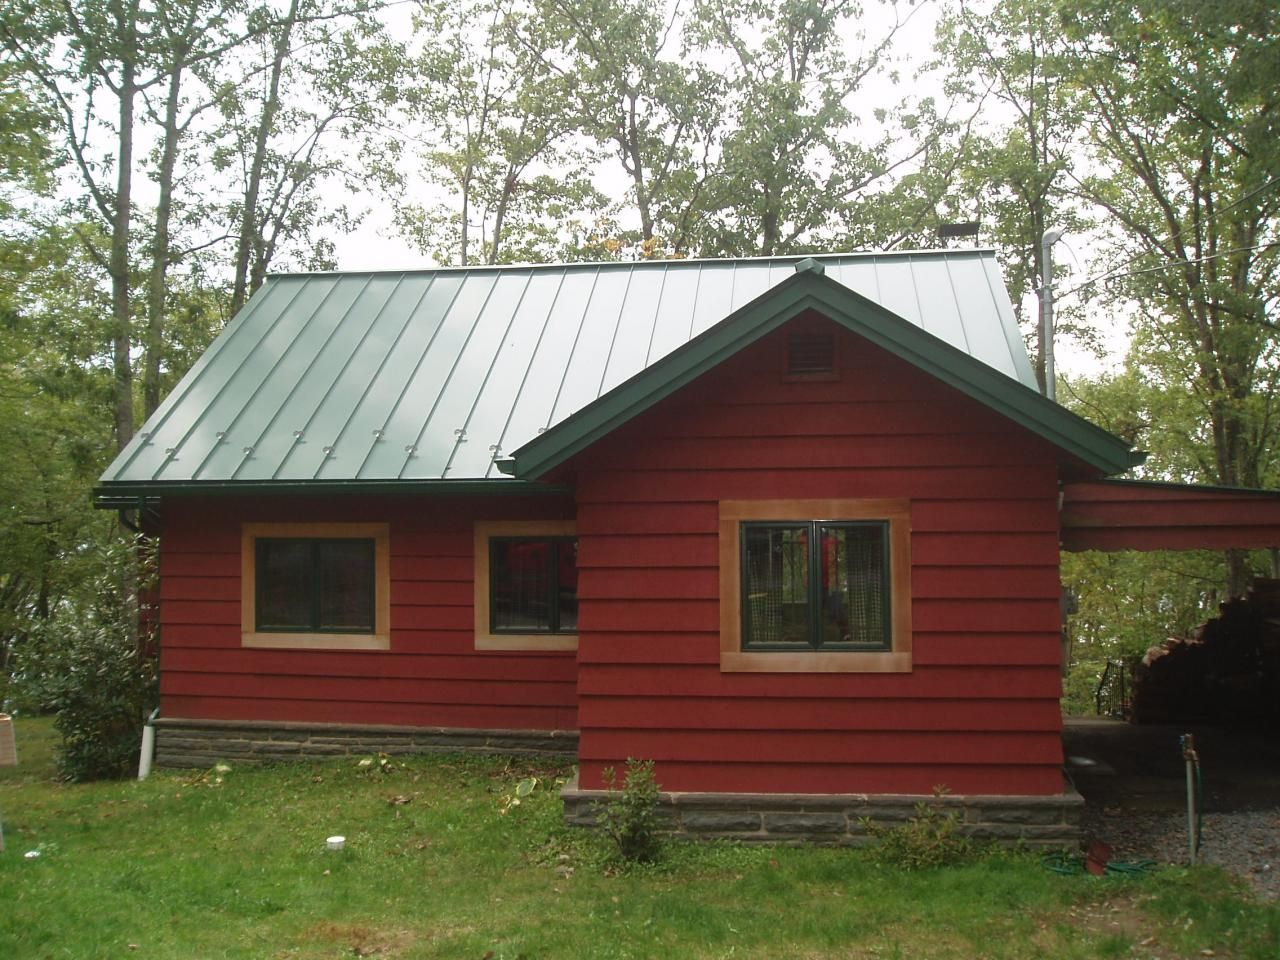 Green metal roof house google search house exterior for Homes with wood siding